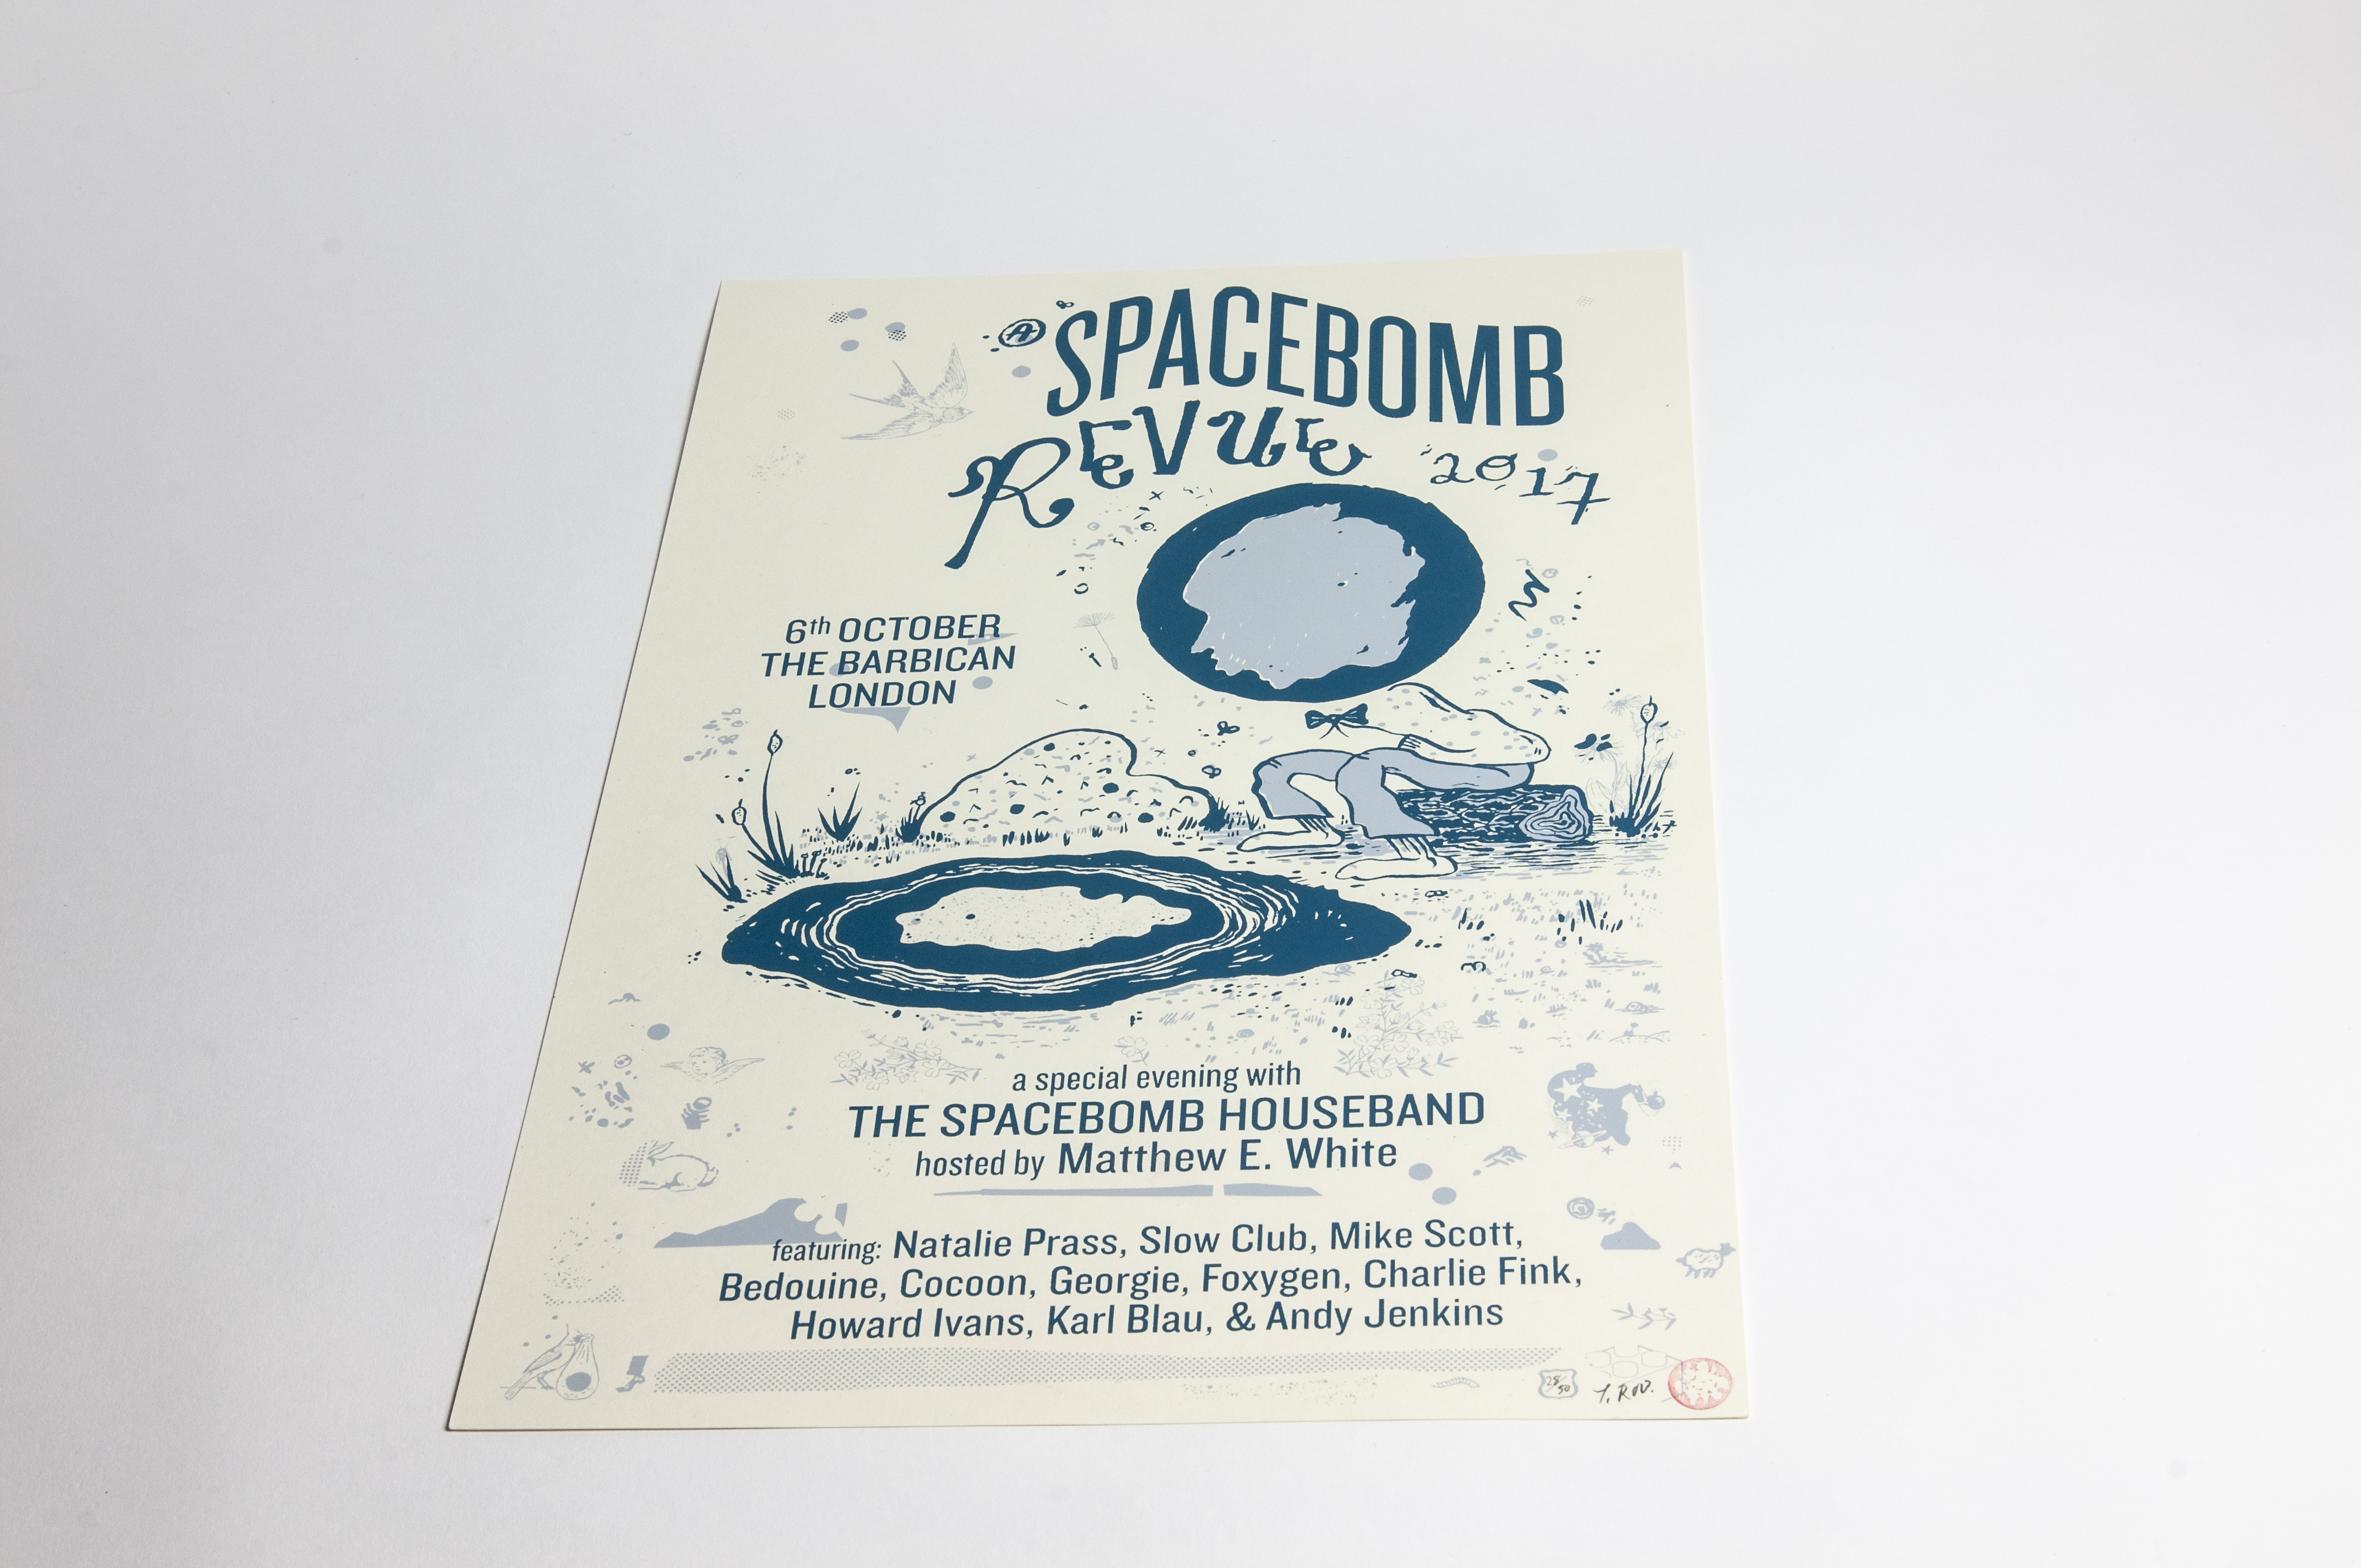 """""""A Spacebomb Revue in London 2017"""" Poster - Spacebomb Records"""